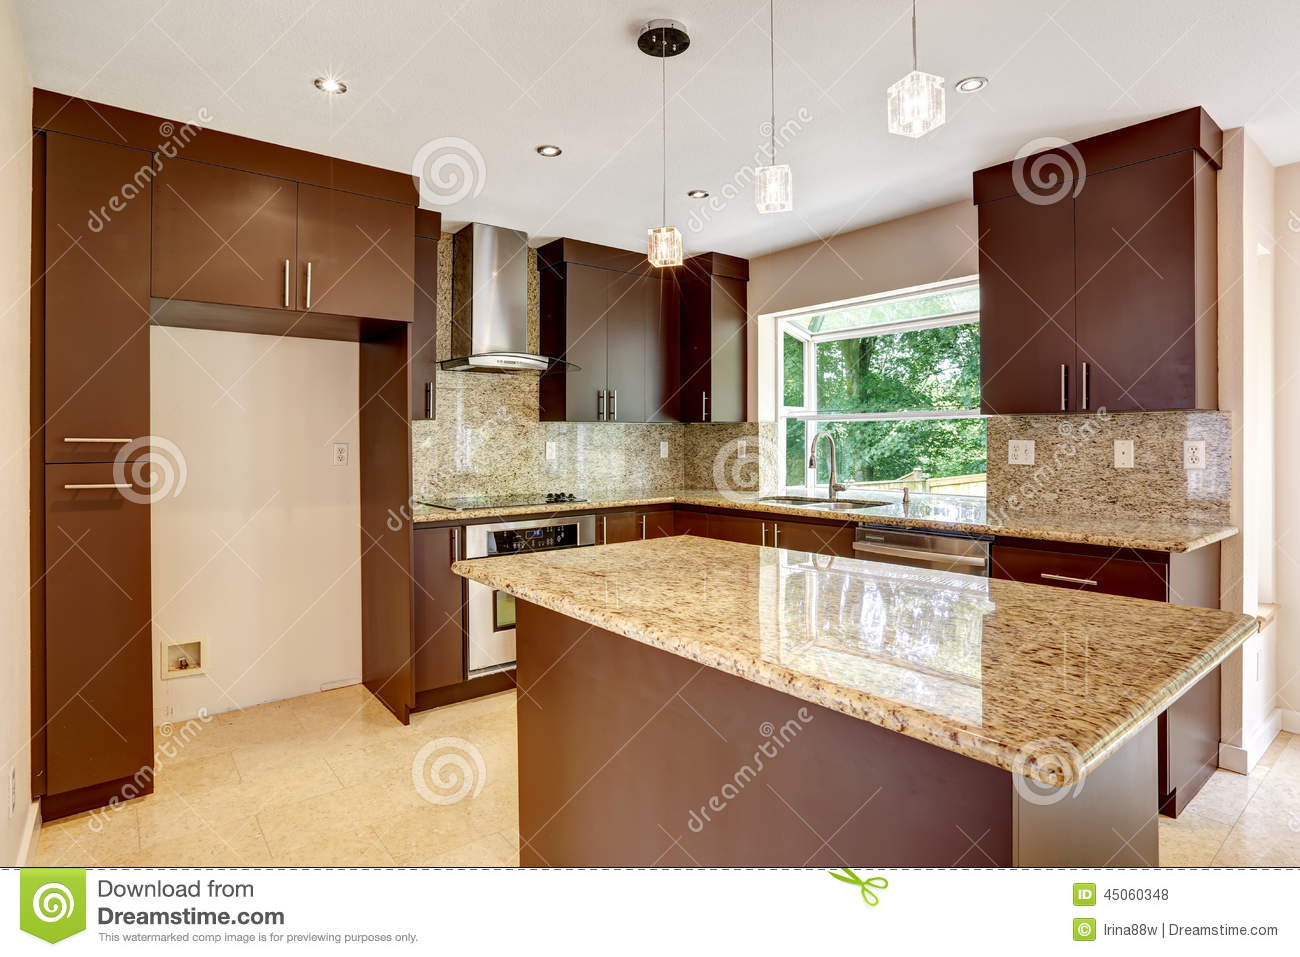 Modern Kitchen Room With Matte Brown Cabinets And Shiny ...